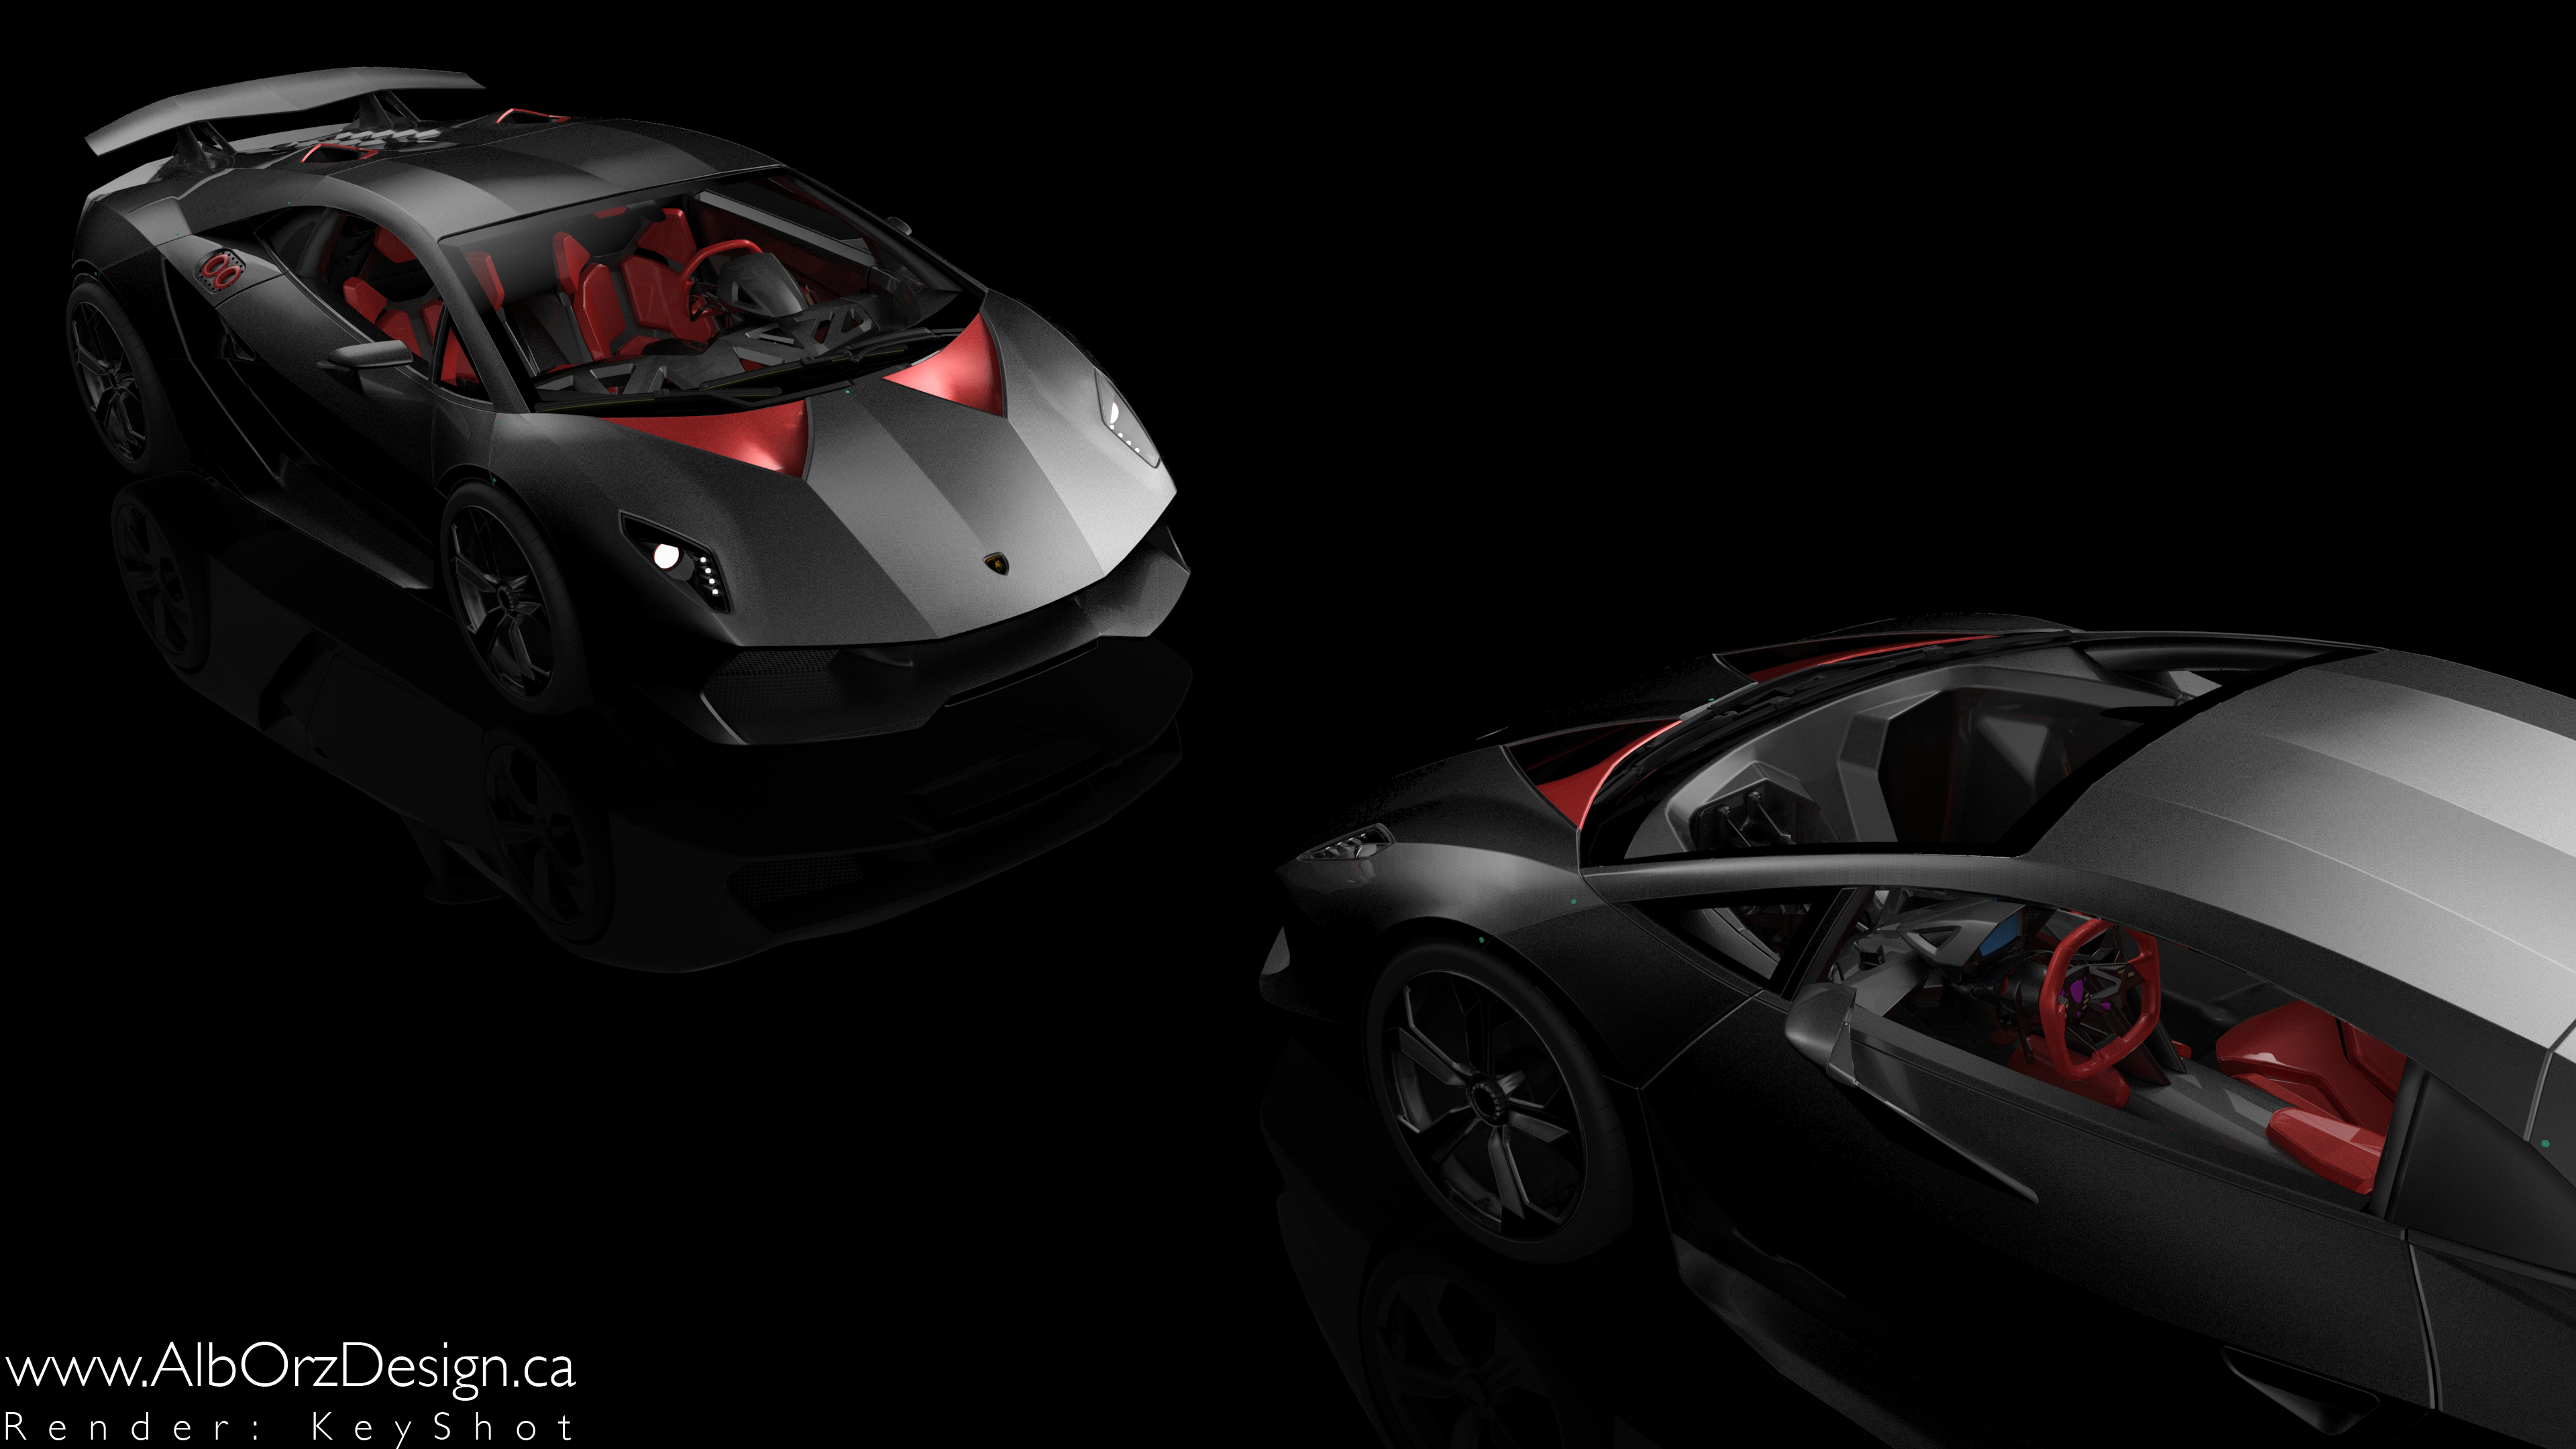 WallpaperUniversitycom 2 Black Lamborghini Sesto 4K Wallpaper 3840x2160